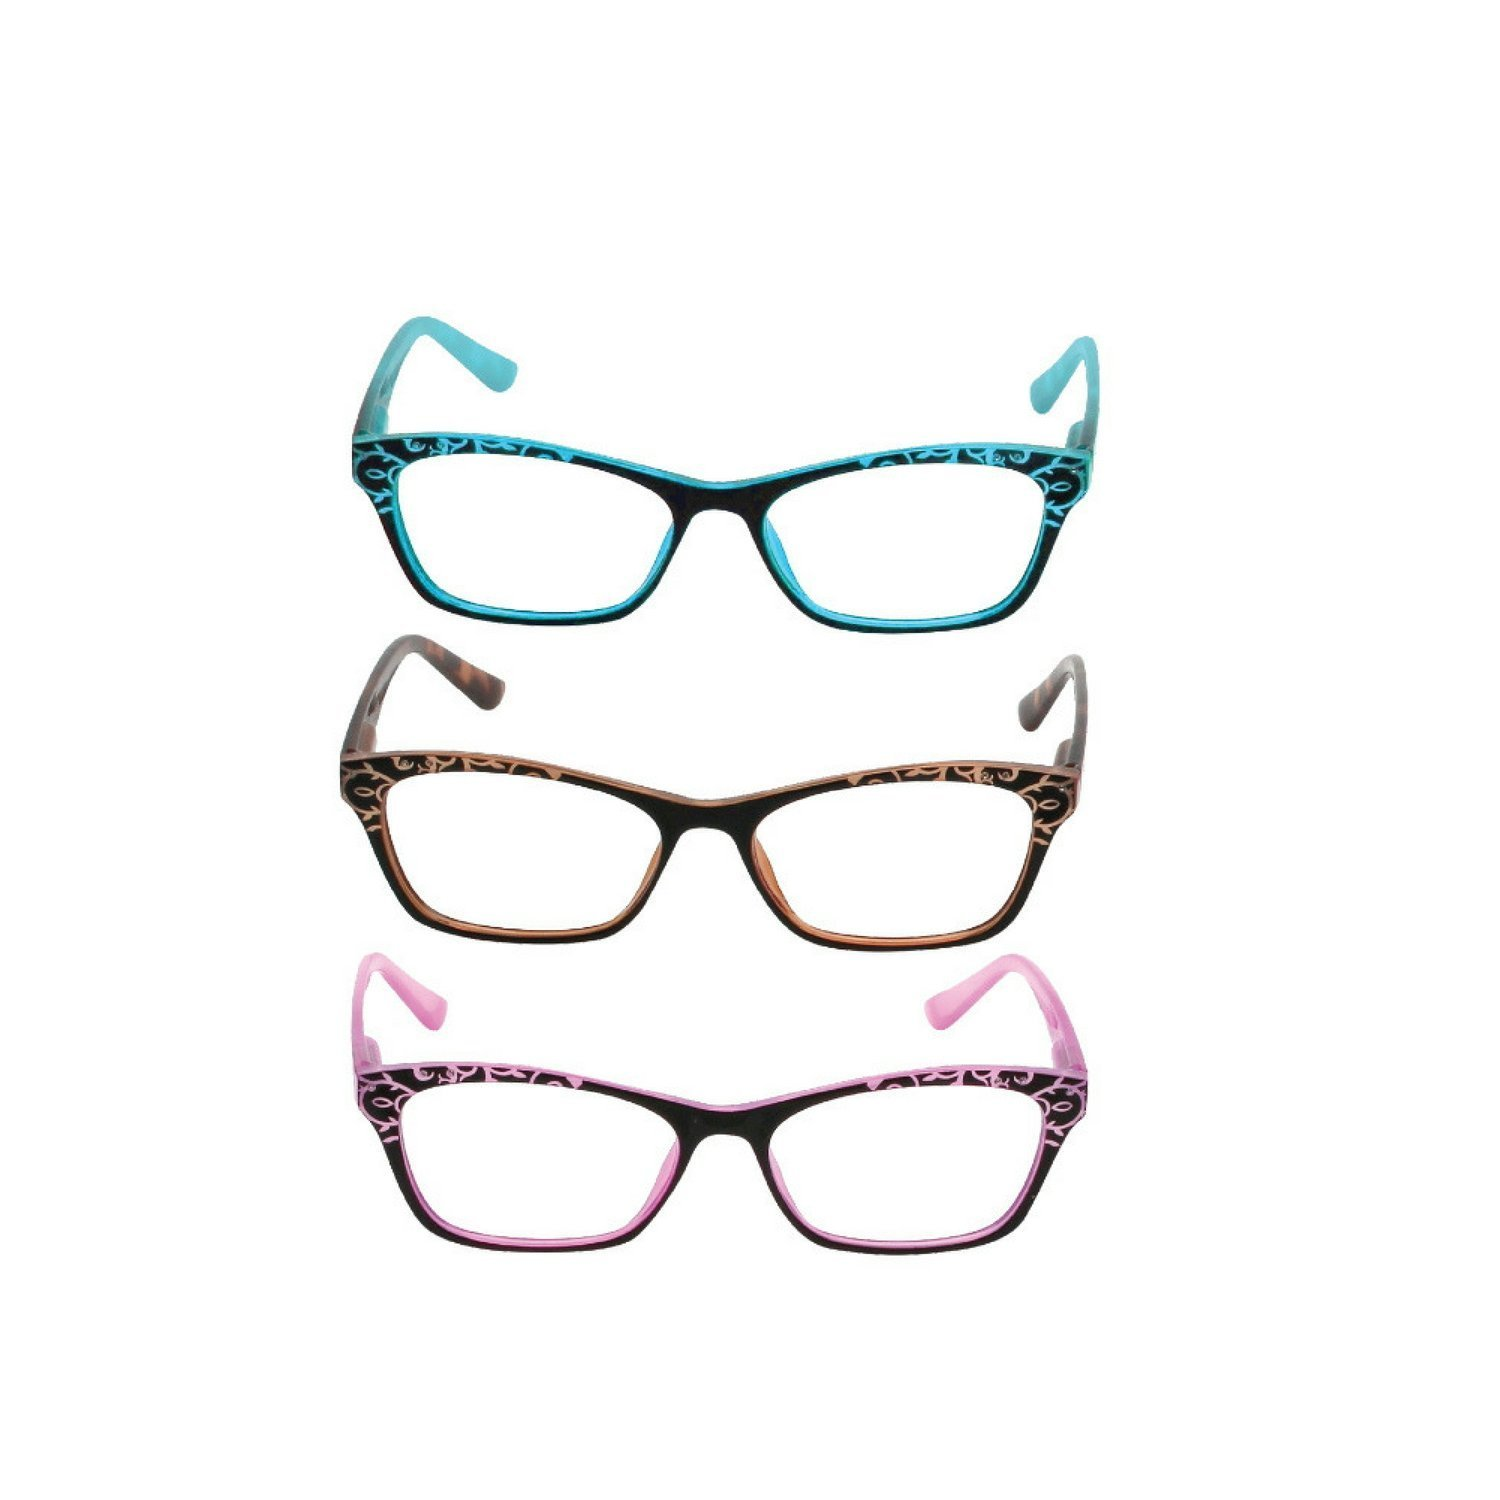 Marc de Rez 3 Pack Reading Glasses for Women – DÉLICIOUS COLLECTION - Elegant Design Anti-Reflective Coating and Blue Light Blocking, 1.50